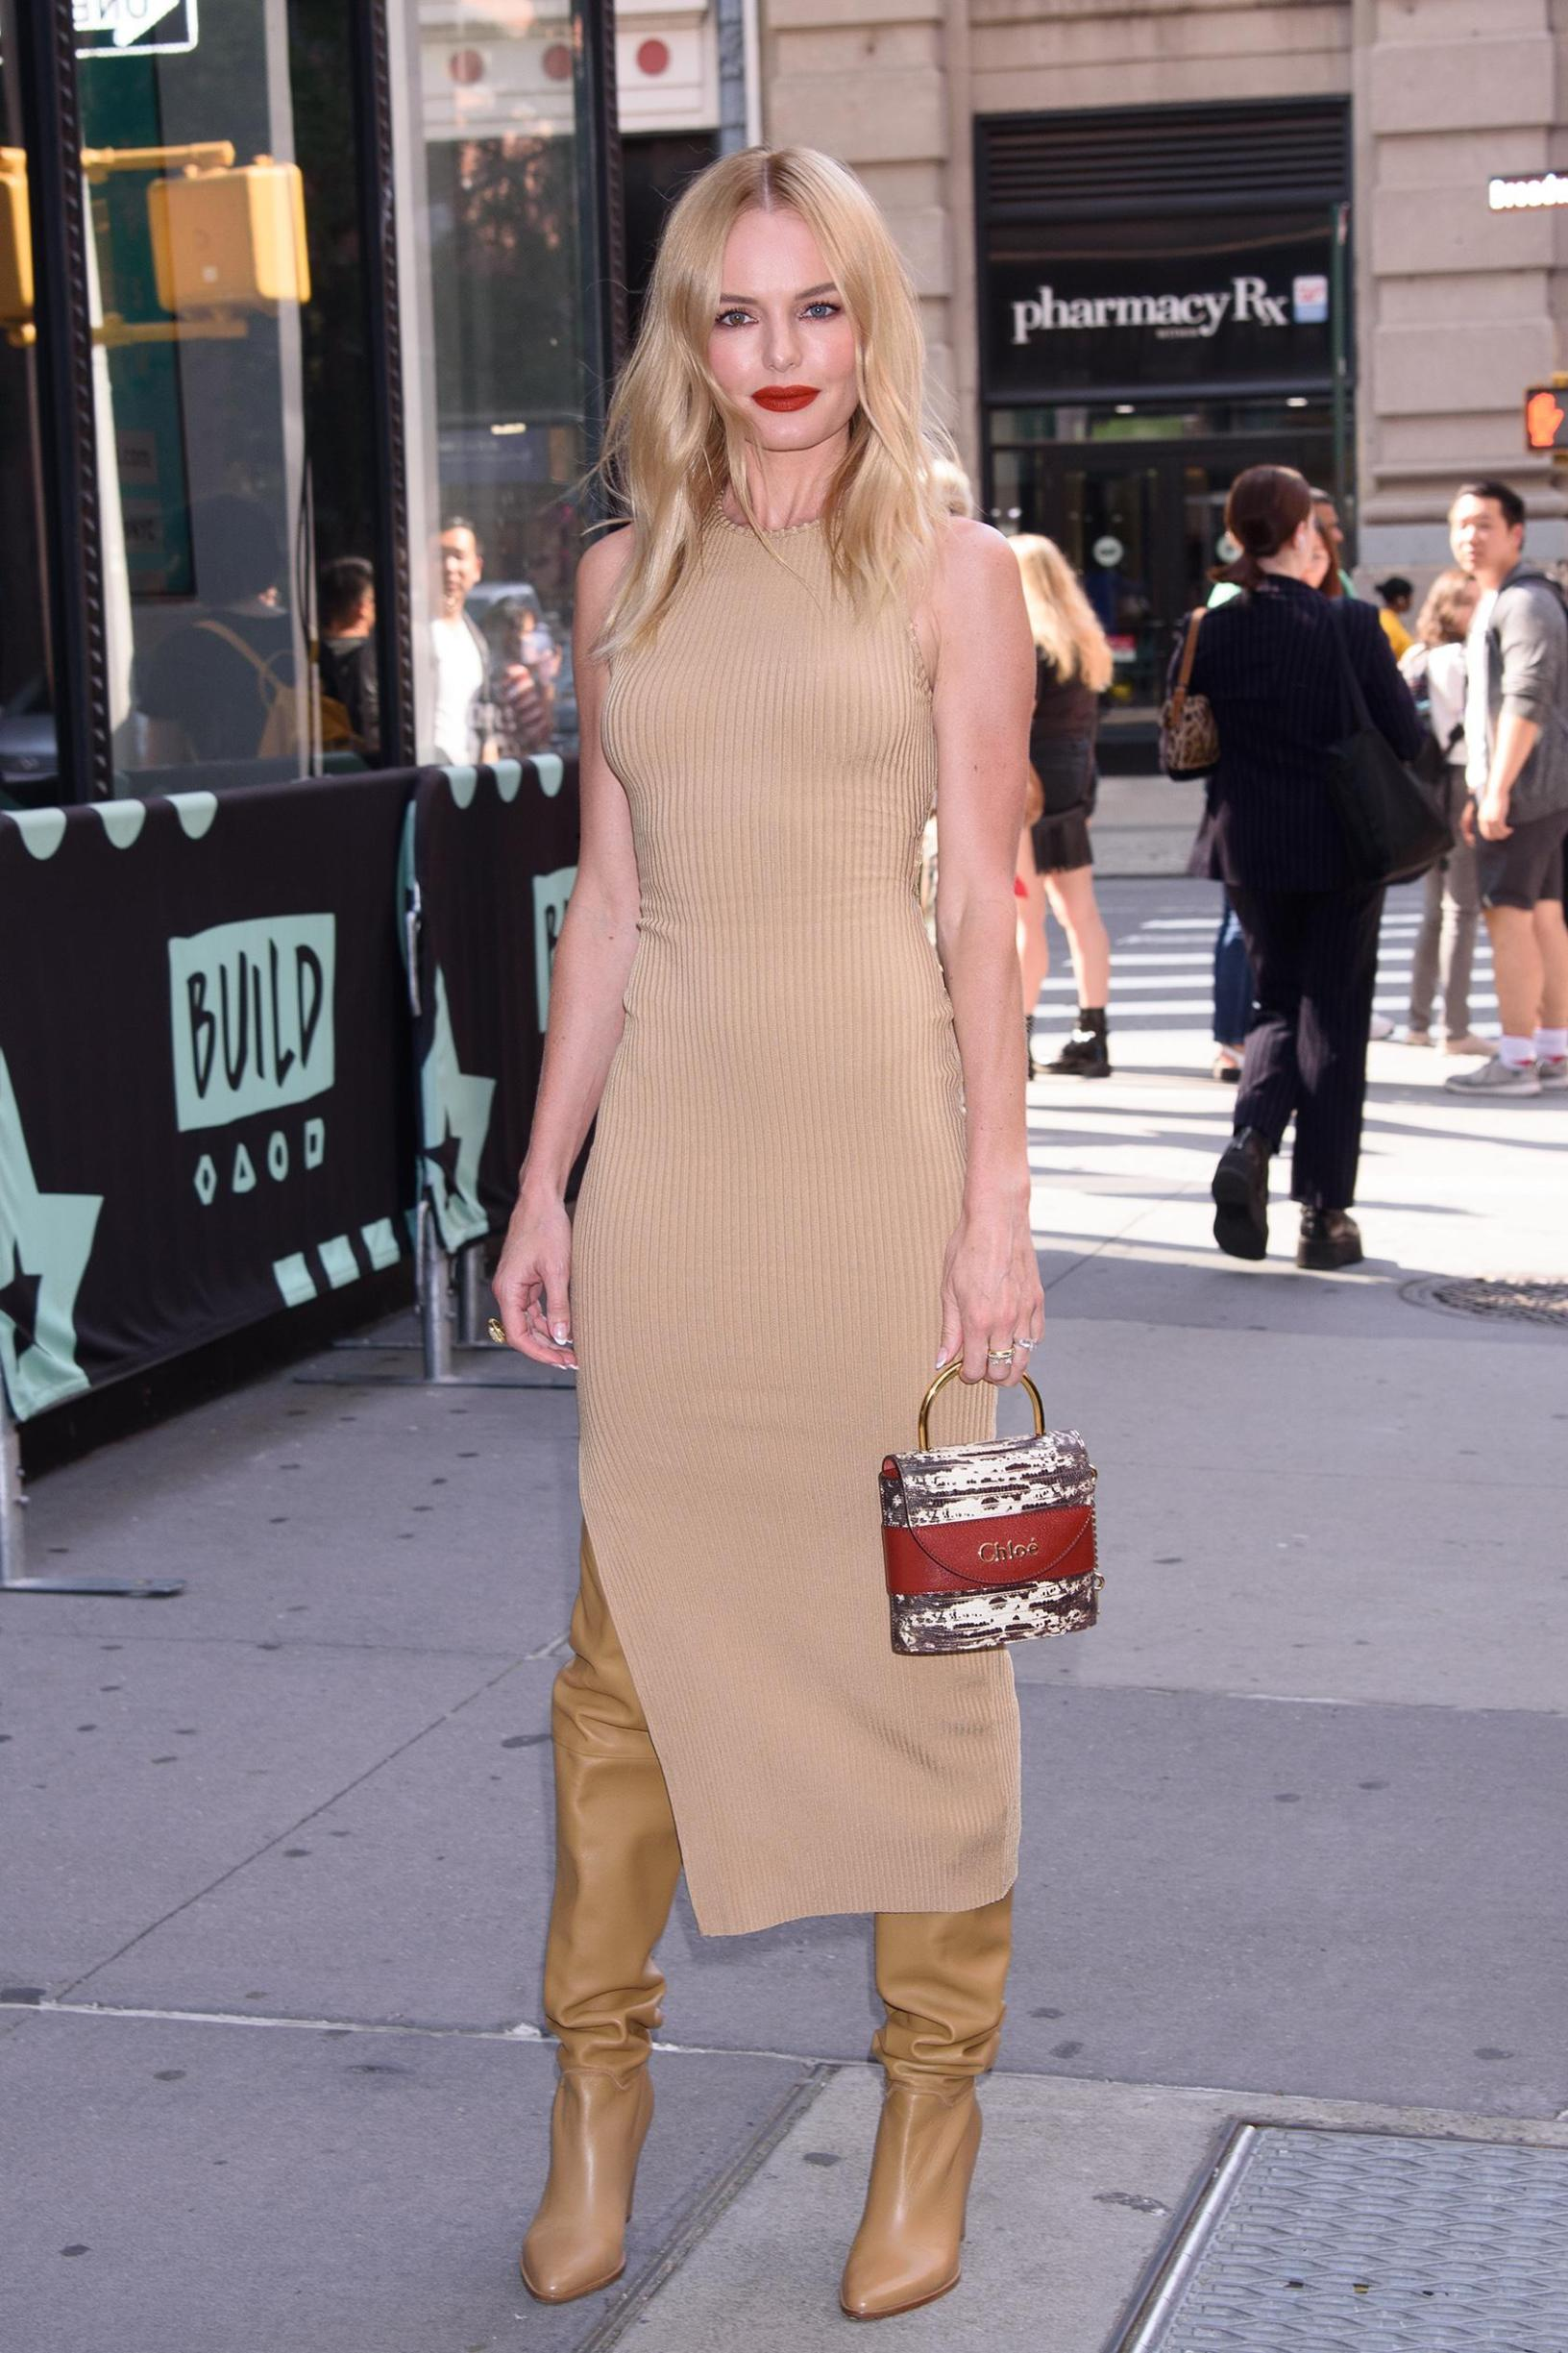 - New York - NY - 20190911 - Celebrity Guests at Build Series Build Studio, NY - Kate Bosworth - Janet Mayer/Startraksphoto.com -   -  This is an editorial, rights-managed image. Please contact  INSTAR Images  for licensing fee and rights information at sales@instarimages.com or call +1 212 414 0207. This image may not be published in any way that is, or might be deemed to be, defamatory, libelous, pornographic, or obscene. Please consult our sales department for any clarification needed prior to publication and use. INSTAR Images reserves the right to pursue unauthorized users of this material. If you are in violation of our intellectual property rights or copyright you may be liable for damages, loss of income, any profits you derive from the unauthorized use of this material and, where appropriate, the cost of collection and/or any statutory damages awarded, Image: 470409811, License: Rights-managed, Restrictions: , Model Release: no, Credit line: Profimedia, INSTAR Images